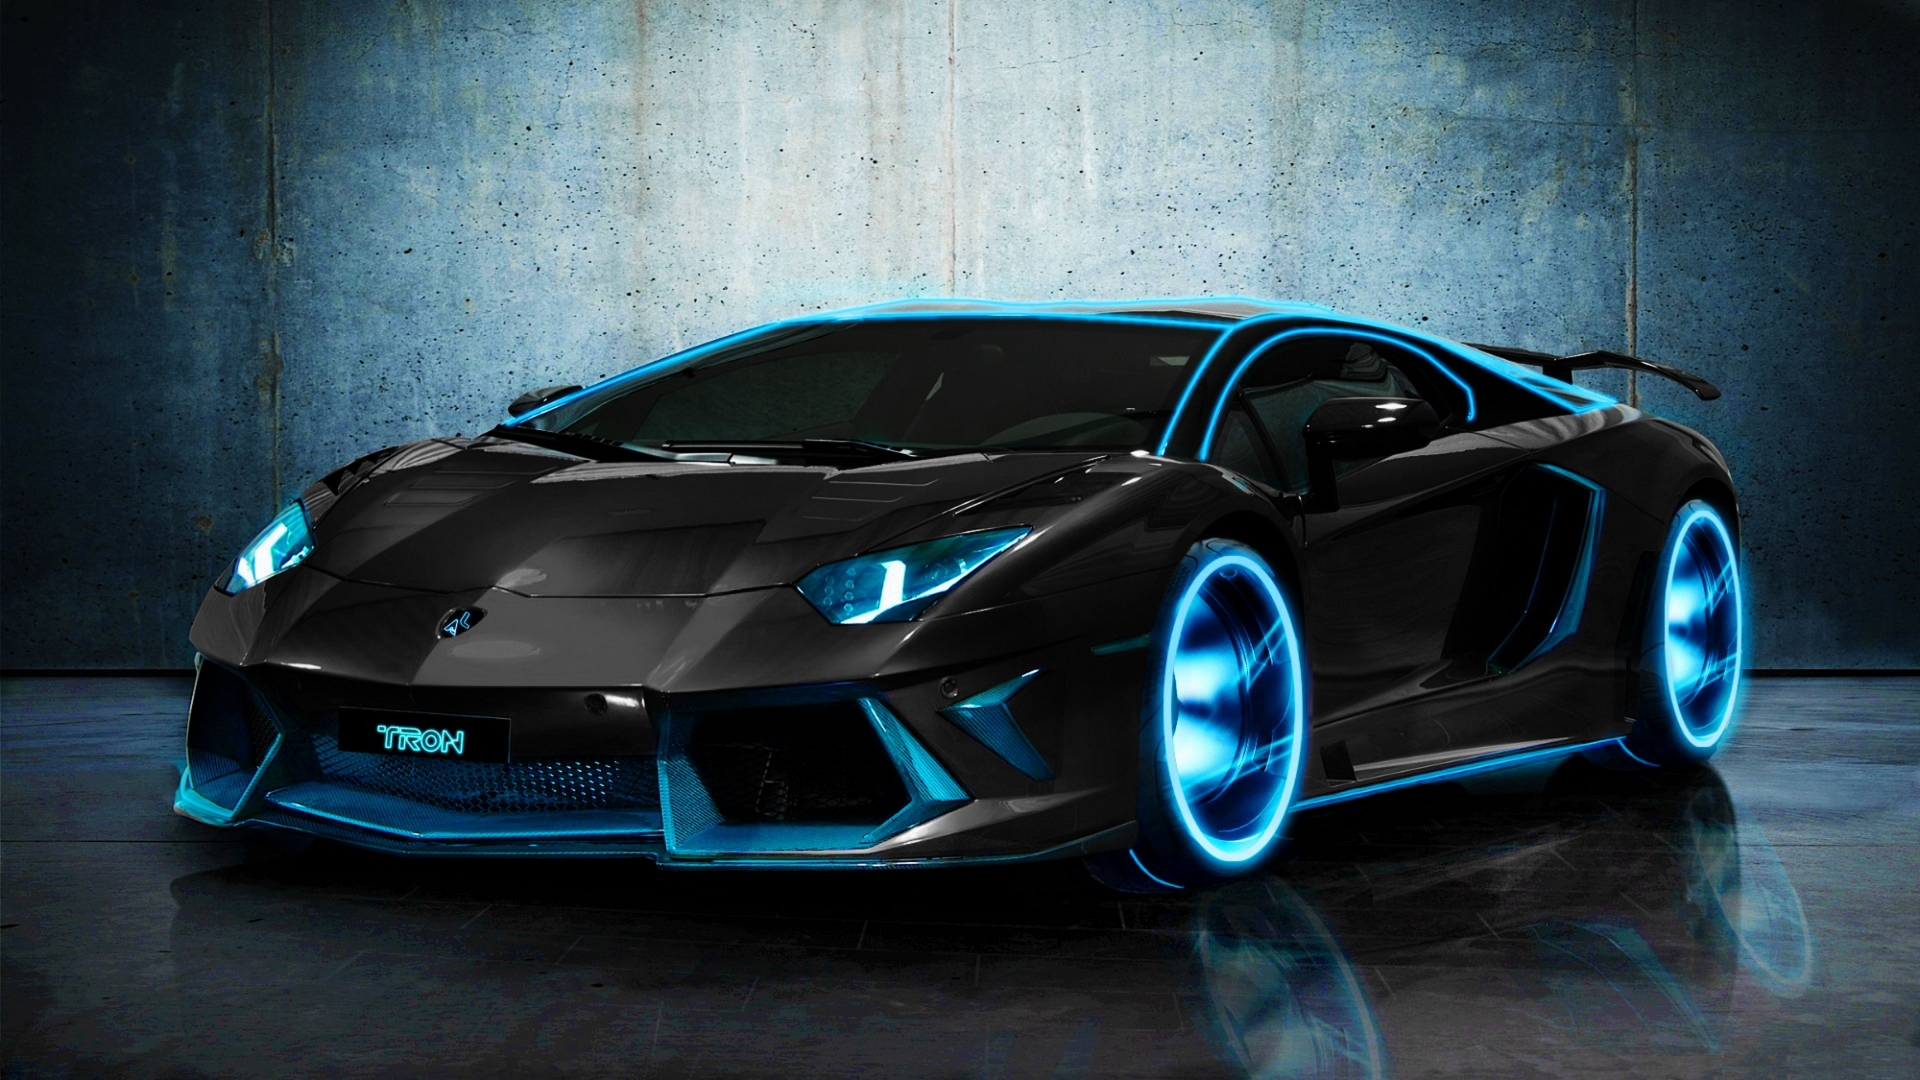 Tron Style Lamborghini Aventador Wallpaper Hd Car Wallpapers